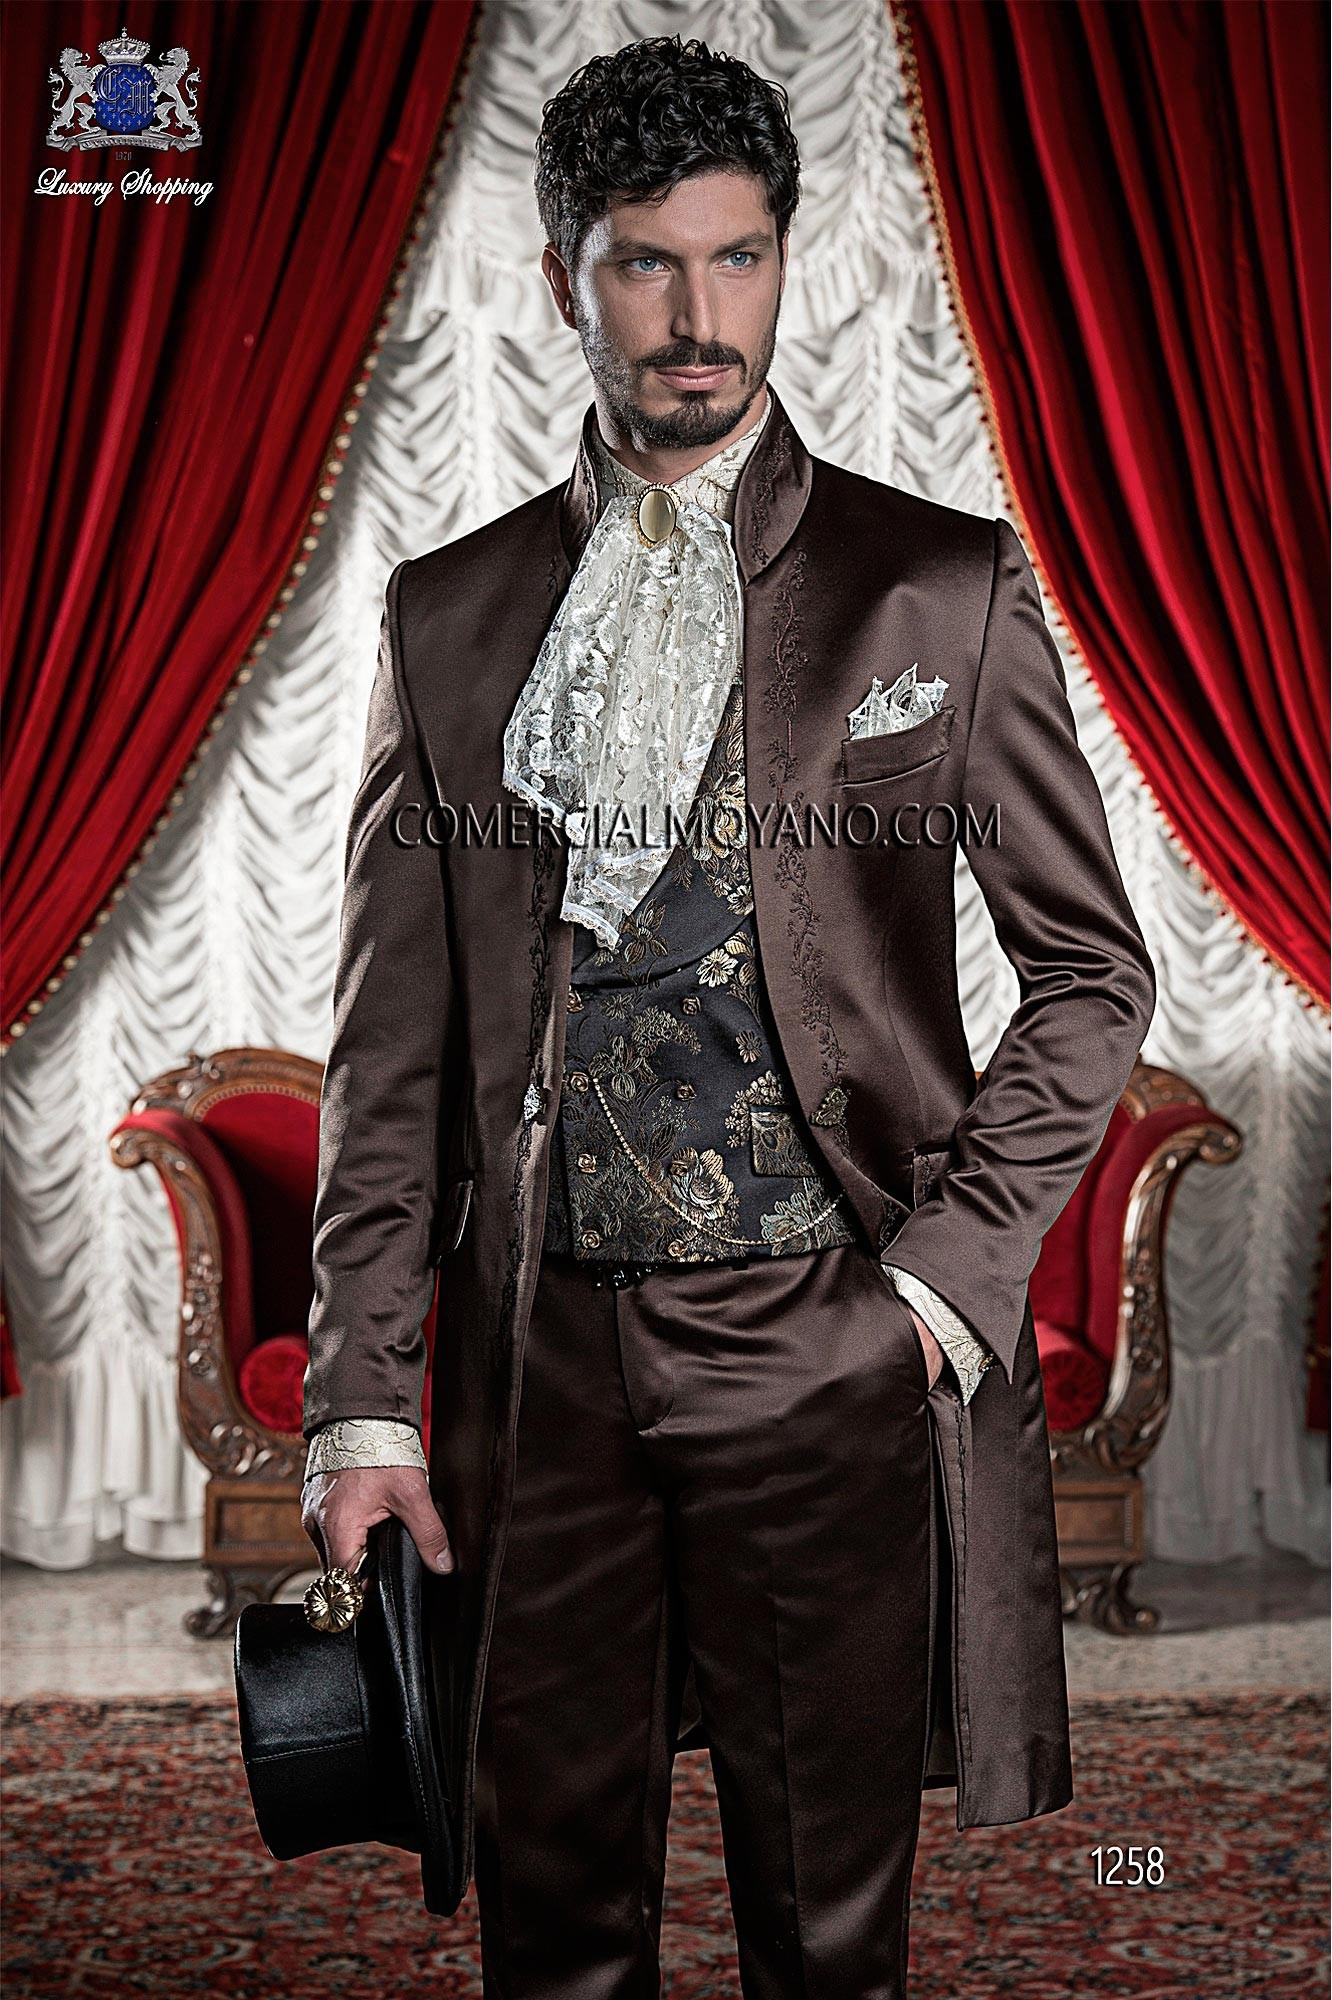 Italian bespoke brown satin Korean frock coat with bronze floral embroidery and Mao collar, style 1258 Ottavio Nuccio Gala, 2015 Baroque collection.